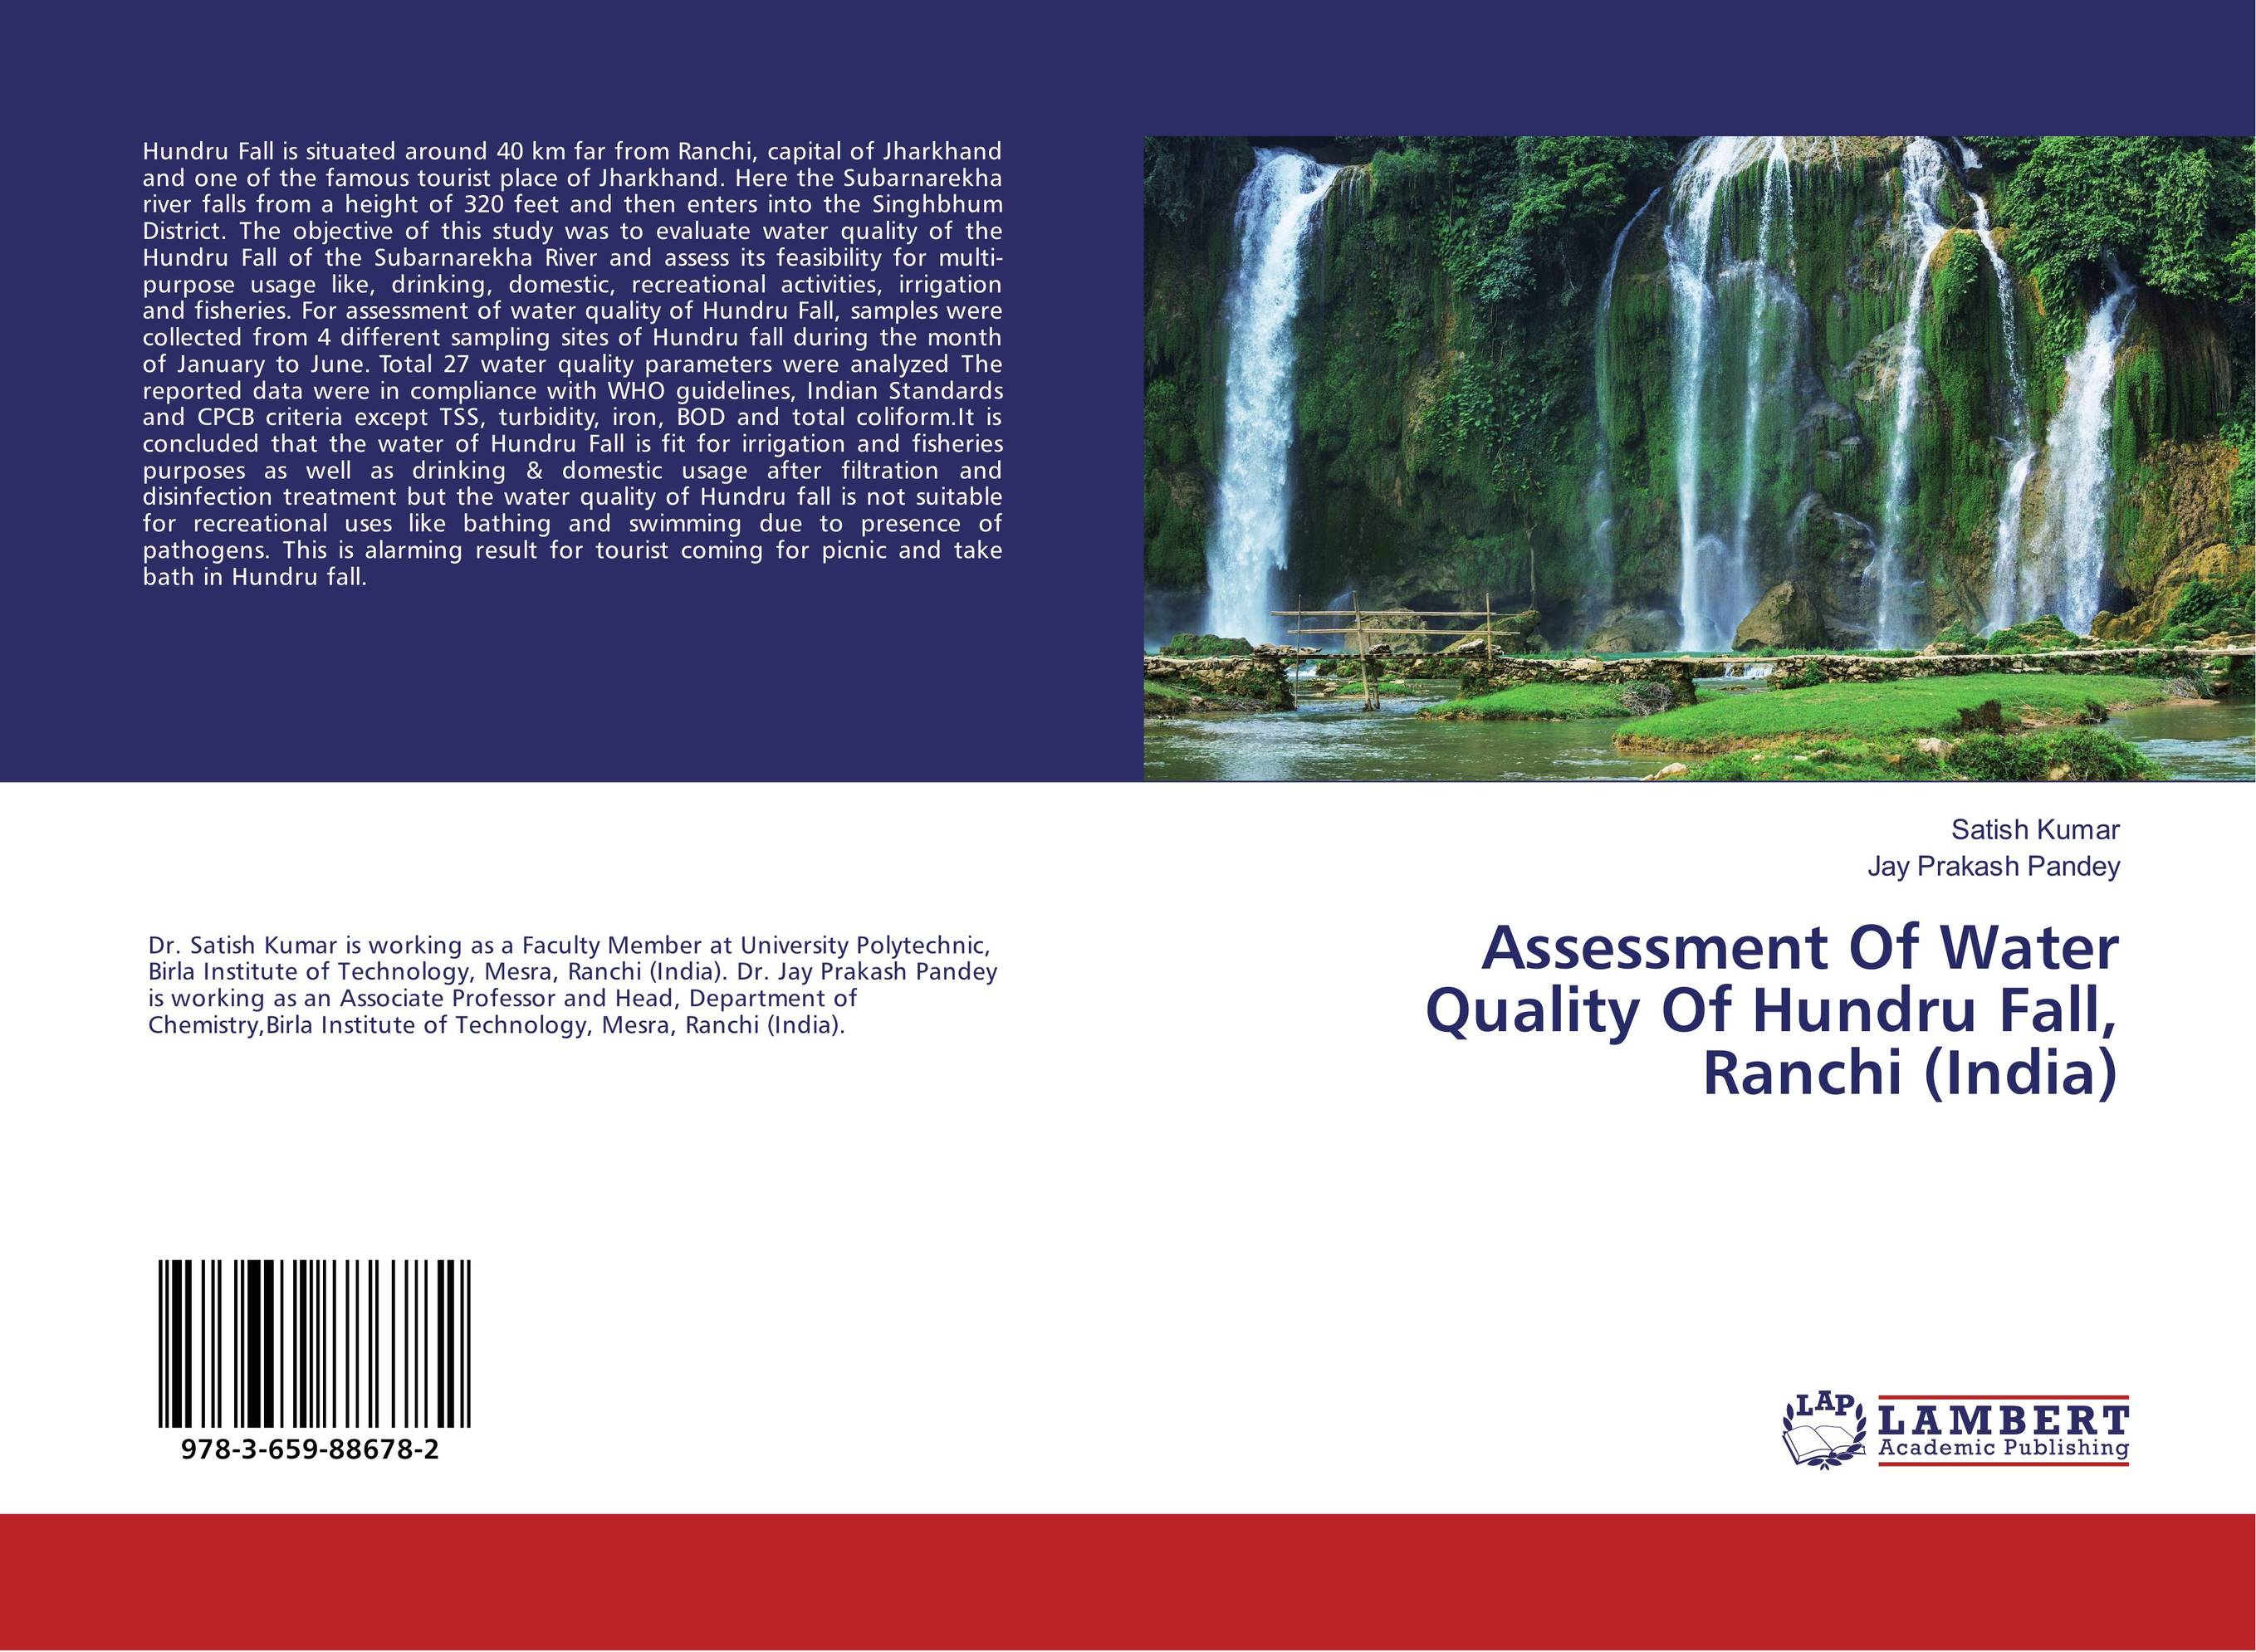 Assessment Of Water Quality Of Hundru Fall, Ranchi (India) купить